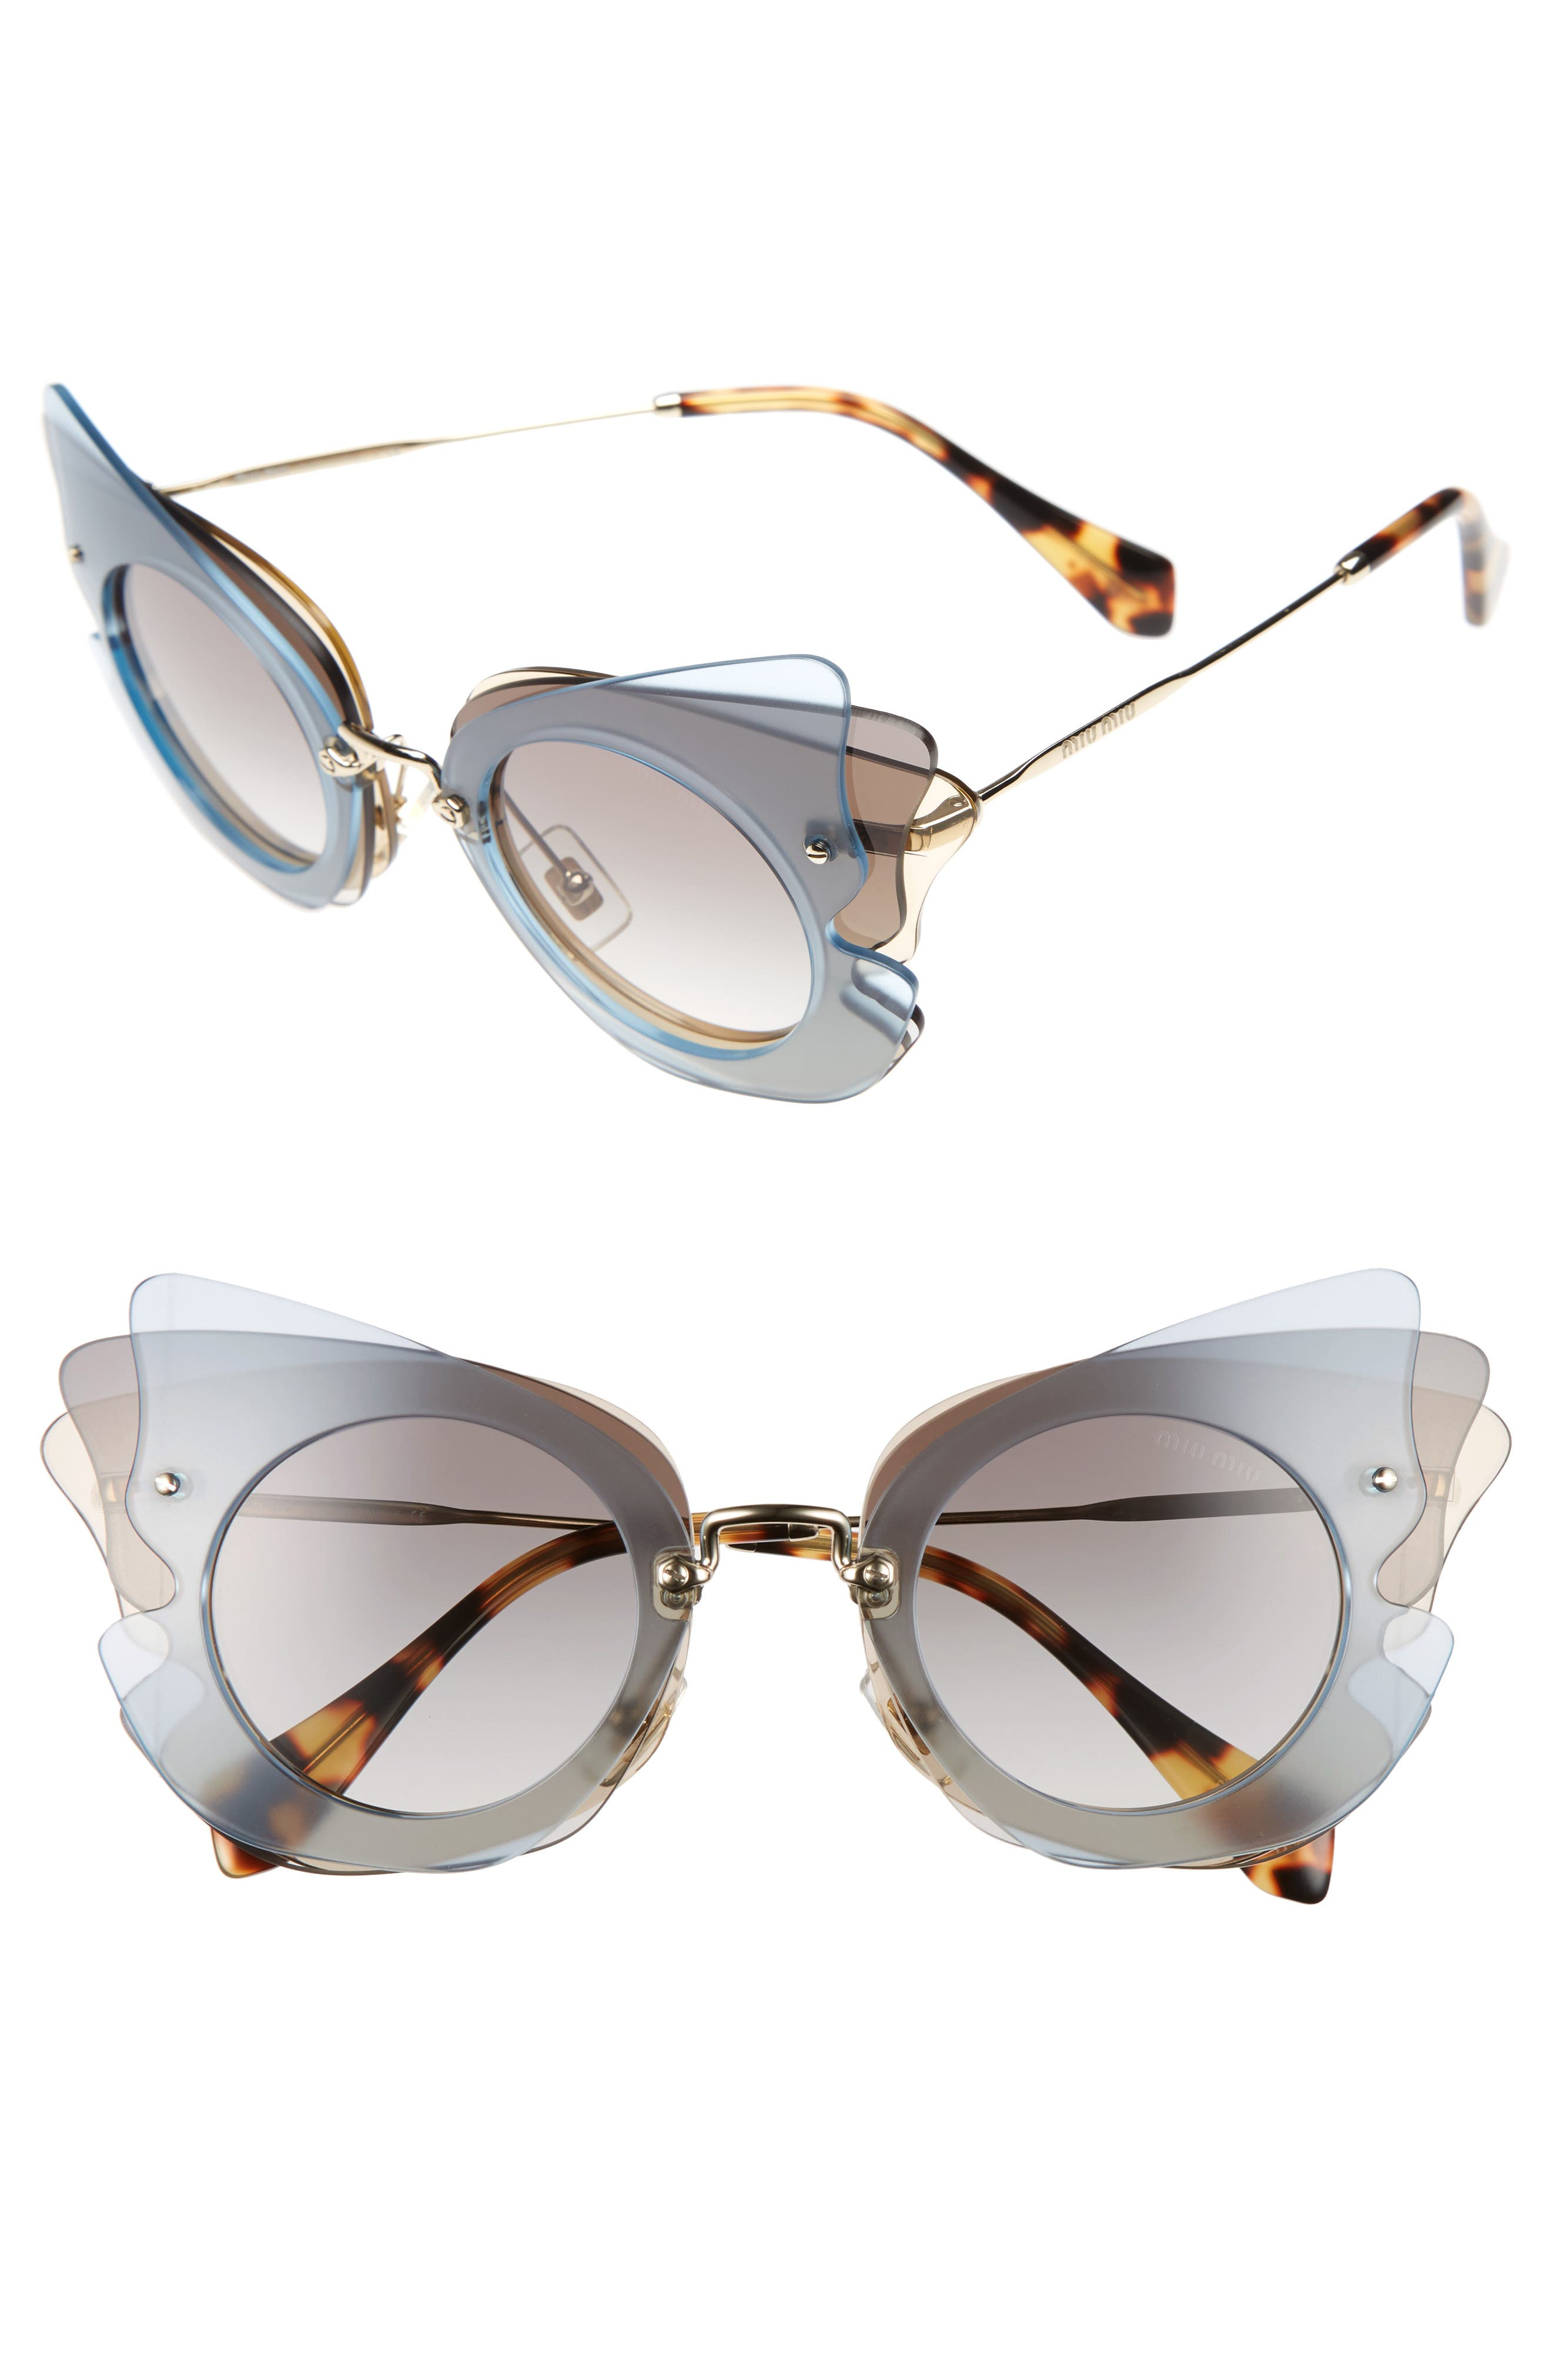 63mm Butterfly Sunglasses,                             Main thumbnail 1, color,                             Gold/ Azure